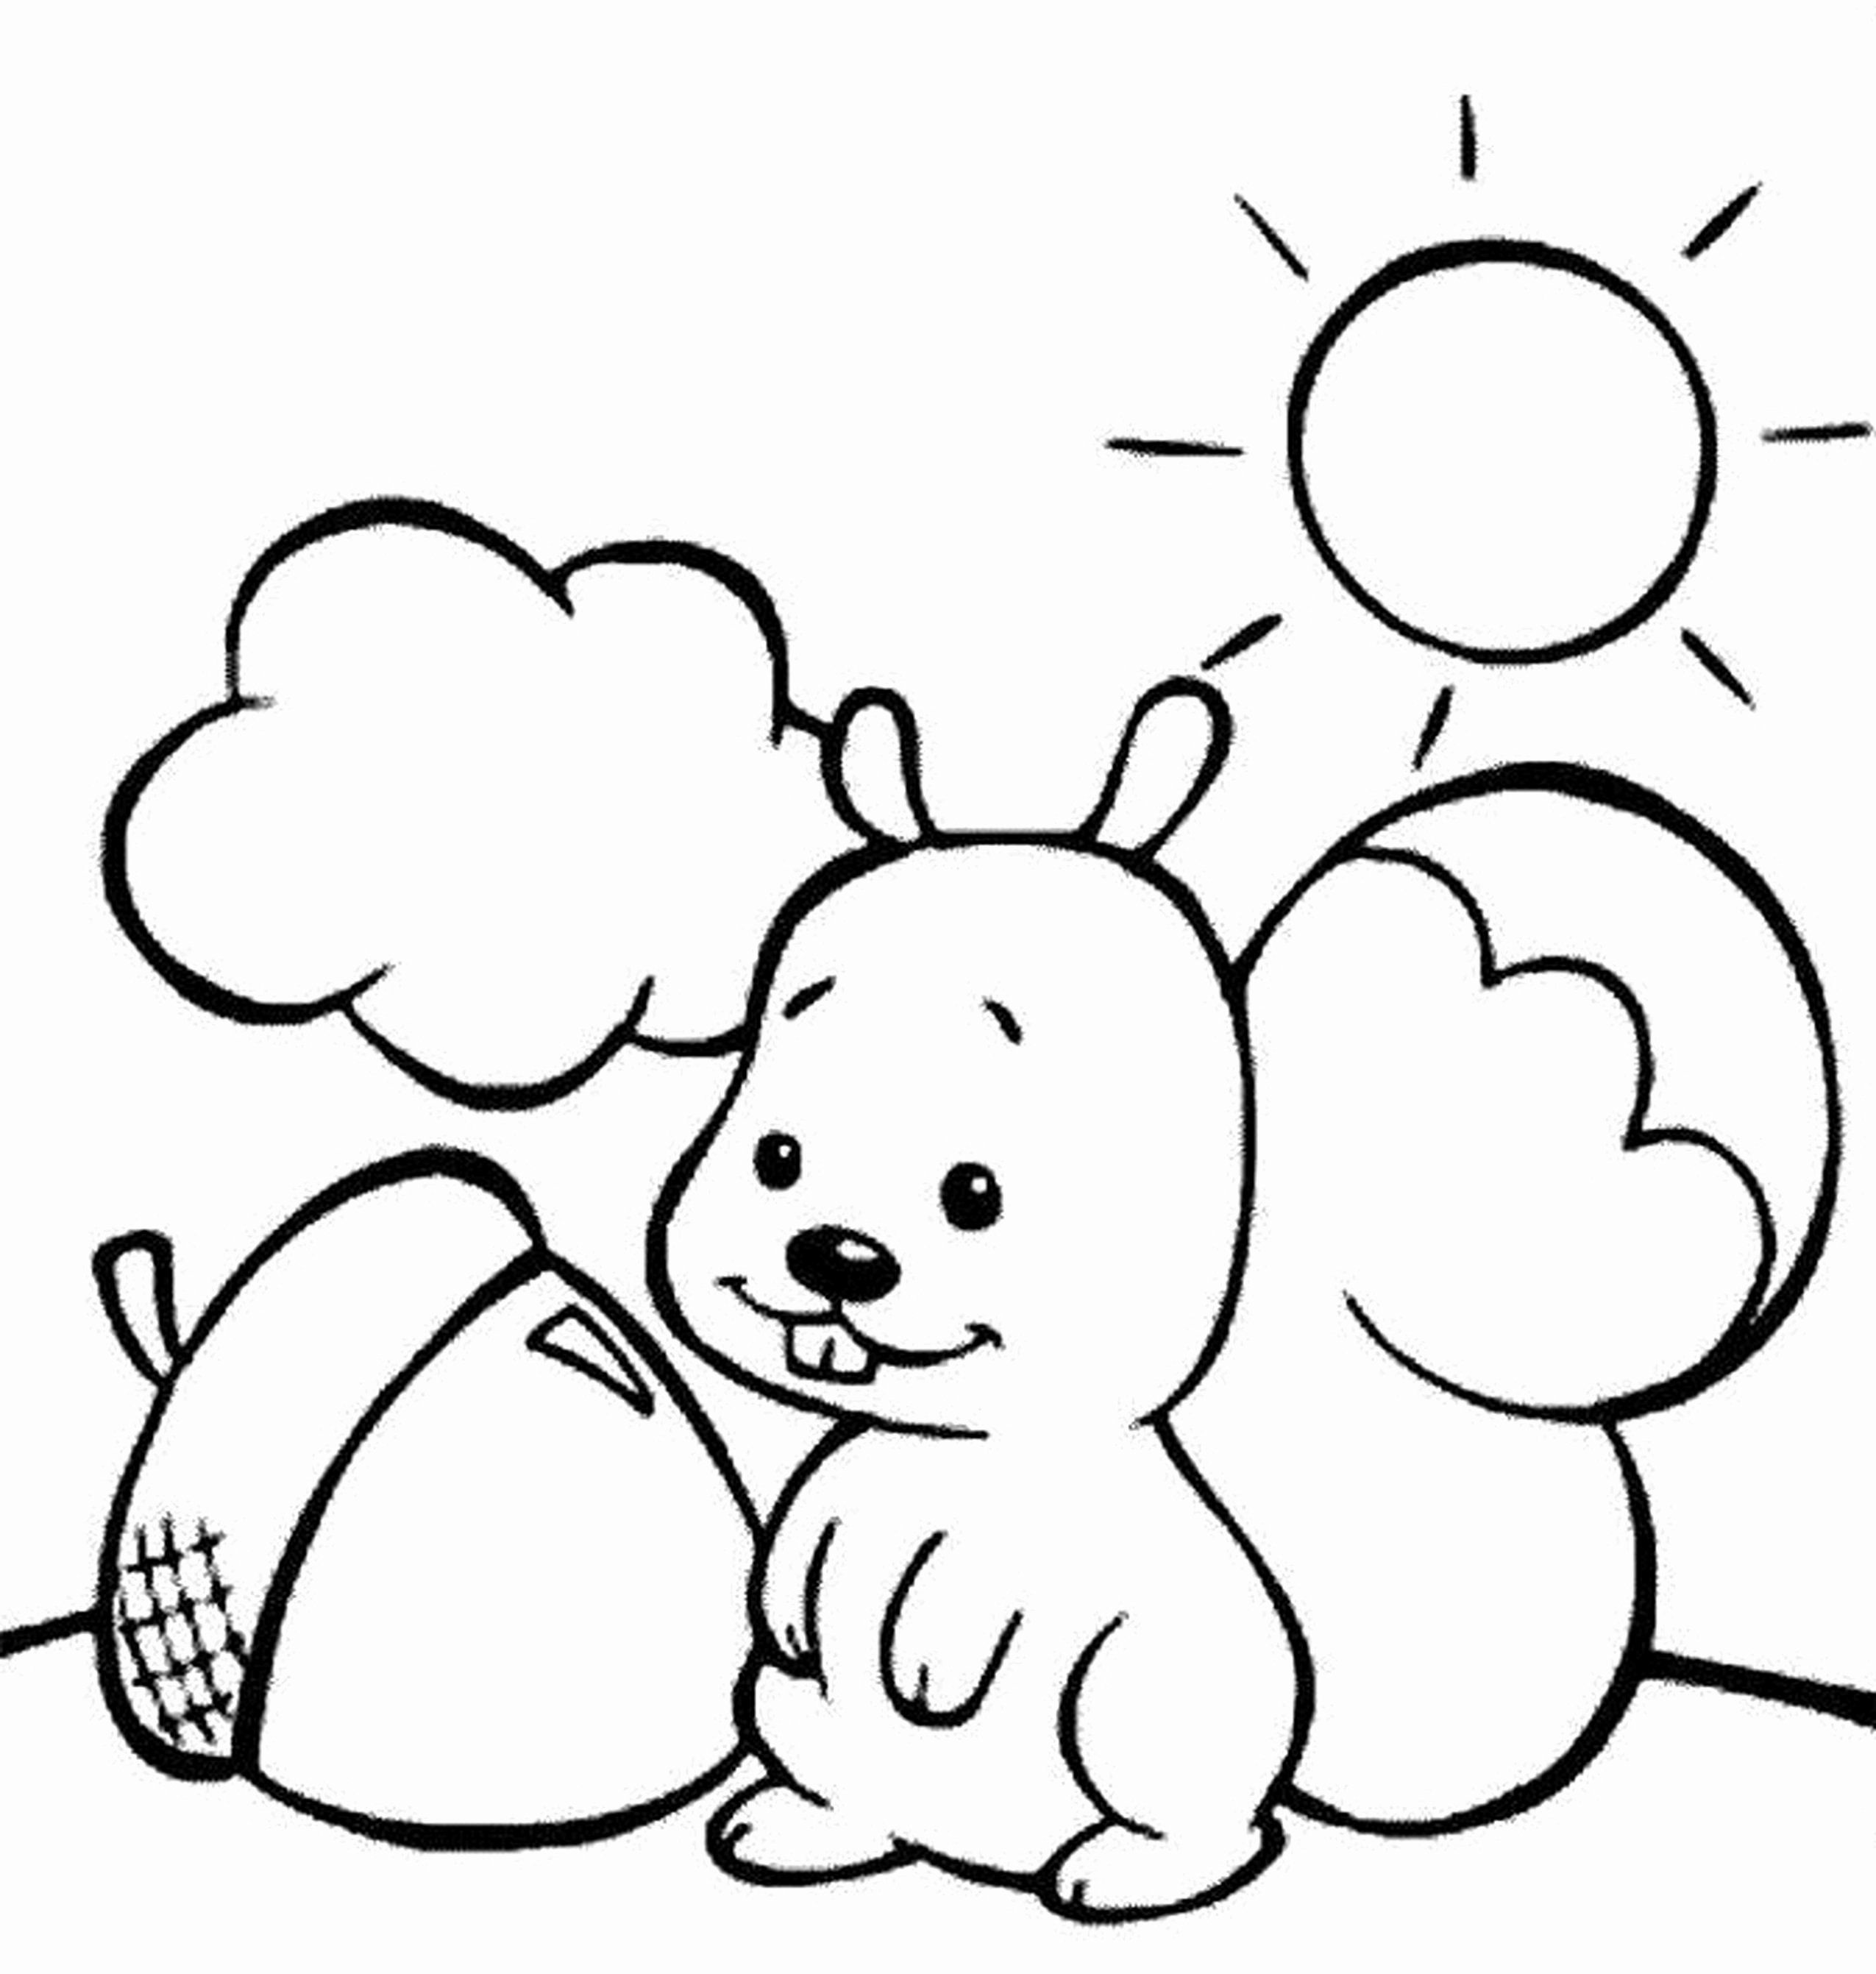 Coloring Pages For Kindergarten Pdf Fresh Coloring Pages Pdf Format Album Sabadaphnecott Fall Coloring Pages Squirrel Coloring Page Thanksgiving Coloring Pages